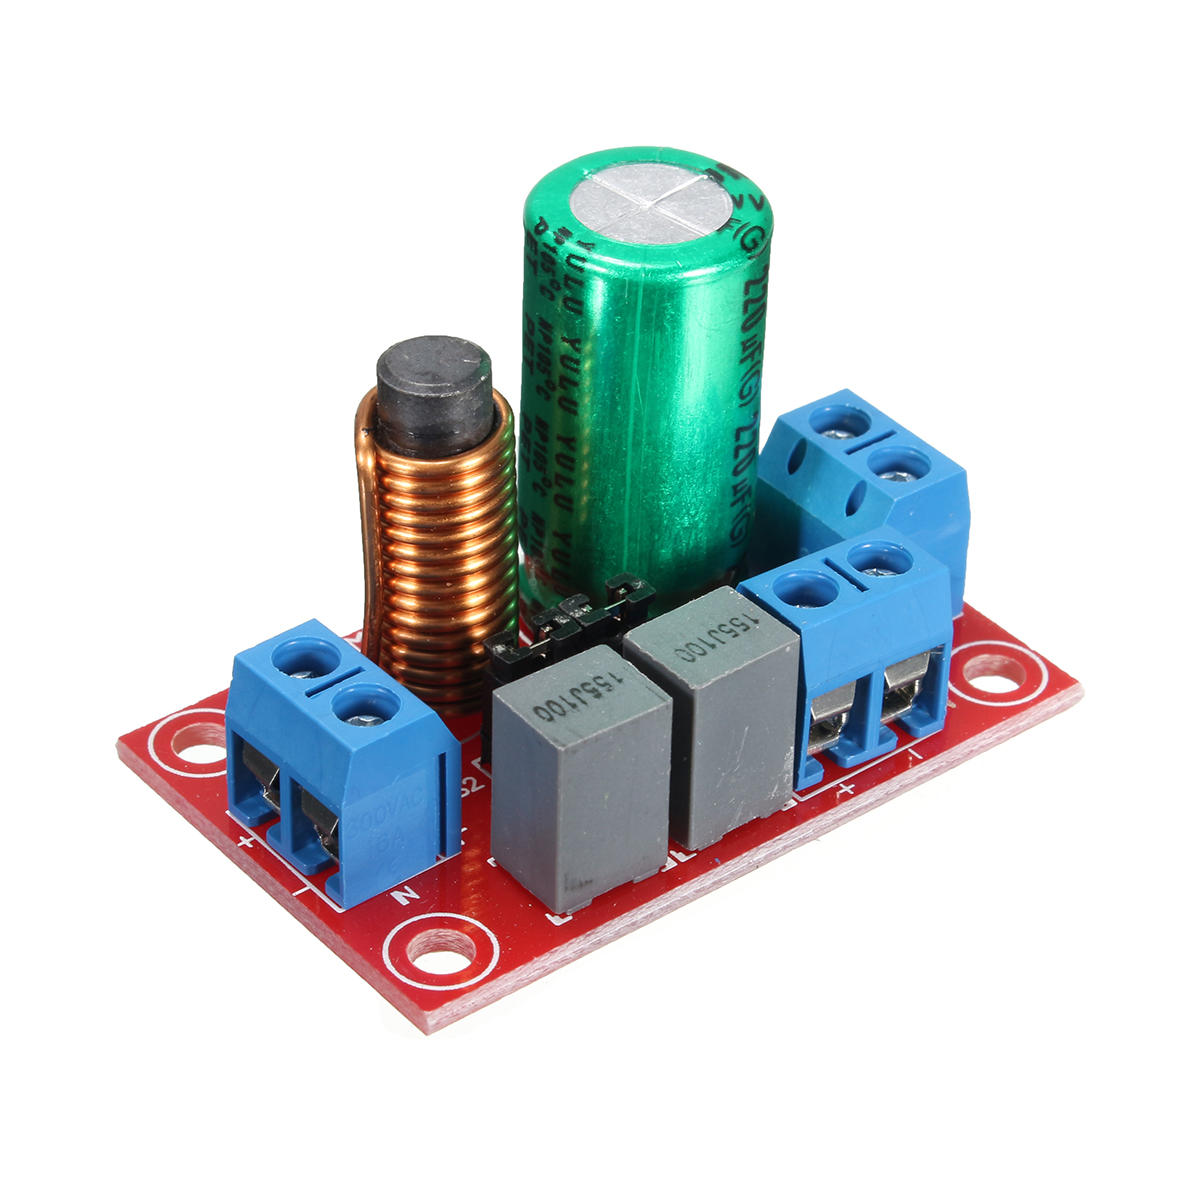 2 Way Audio Frequency Divider Crossover Module Filter Adjustable Treble Bass Board For Speakers